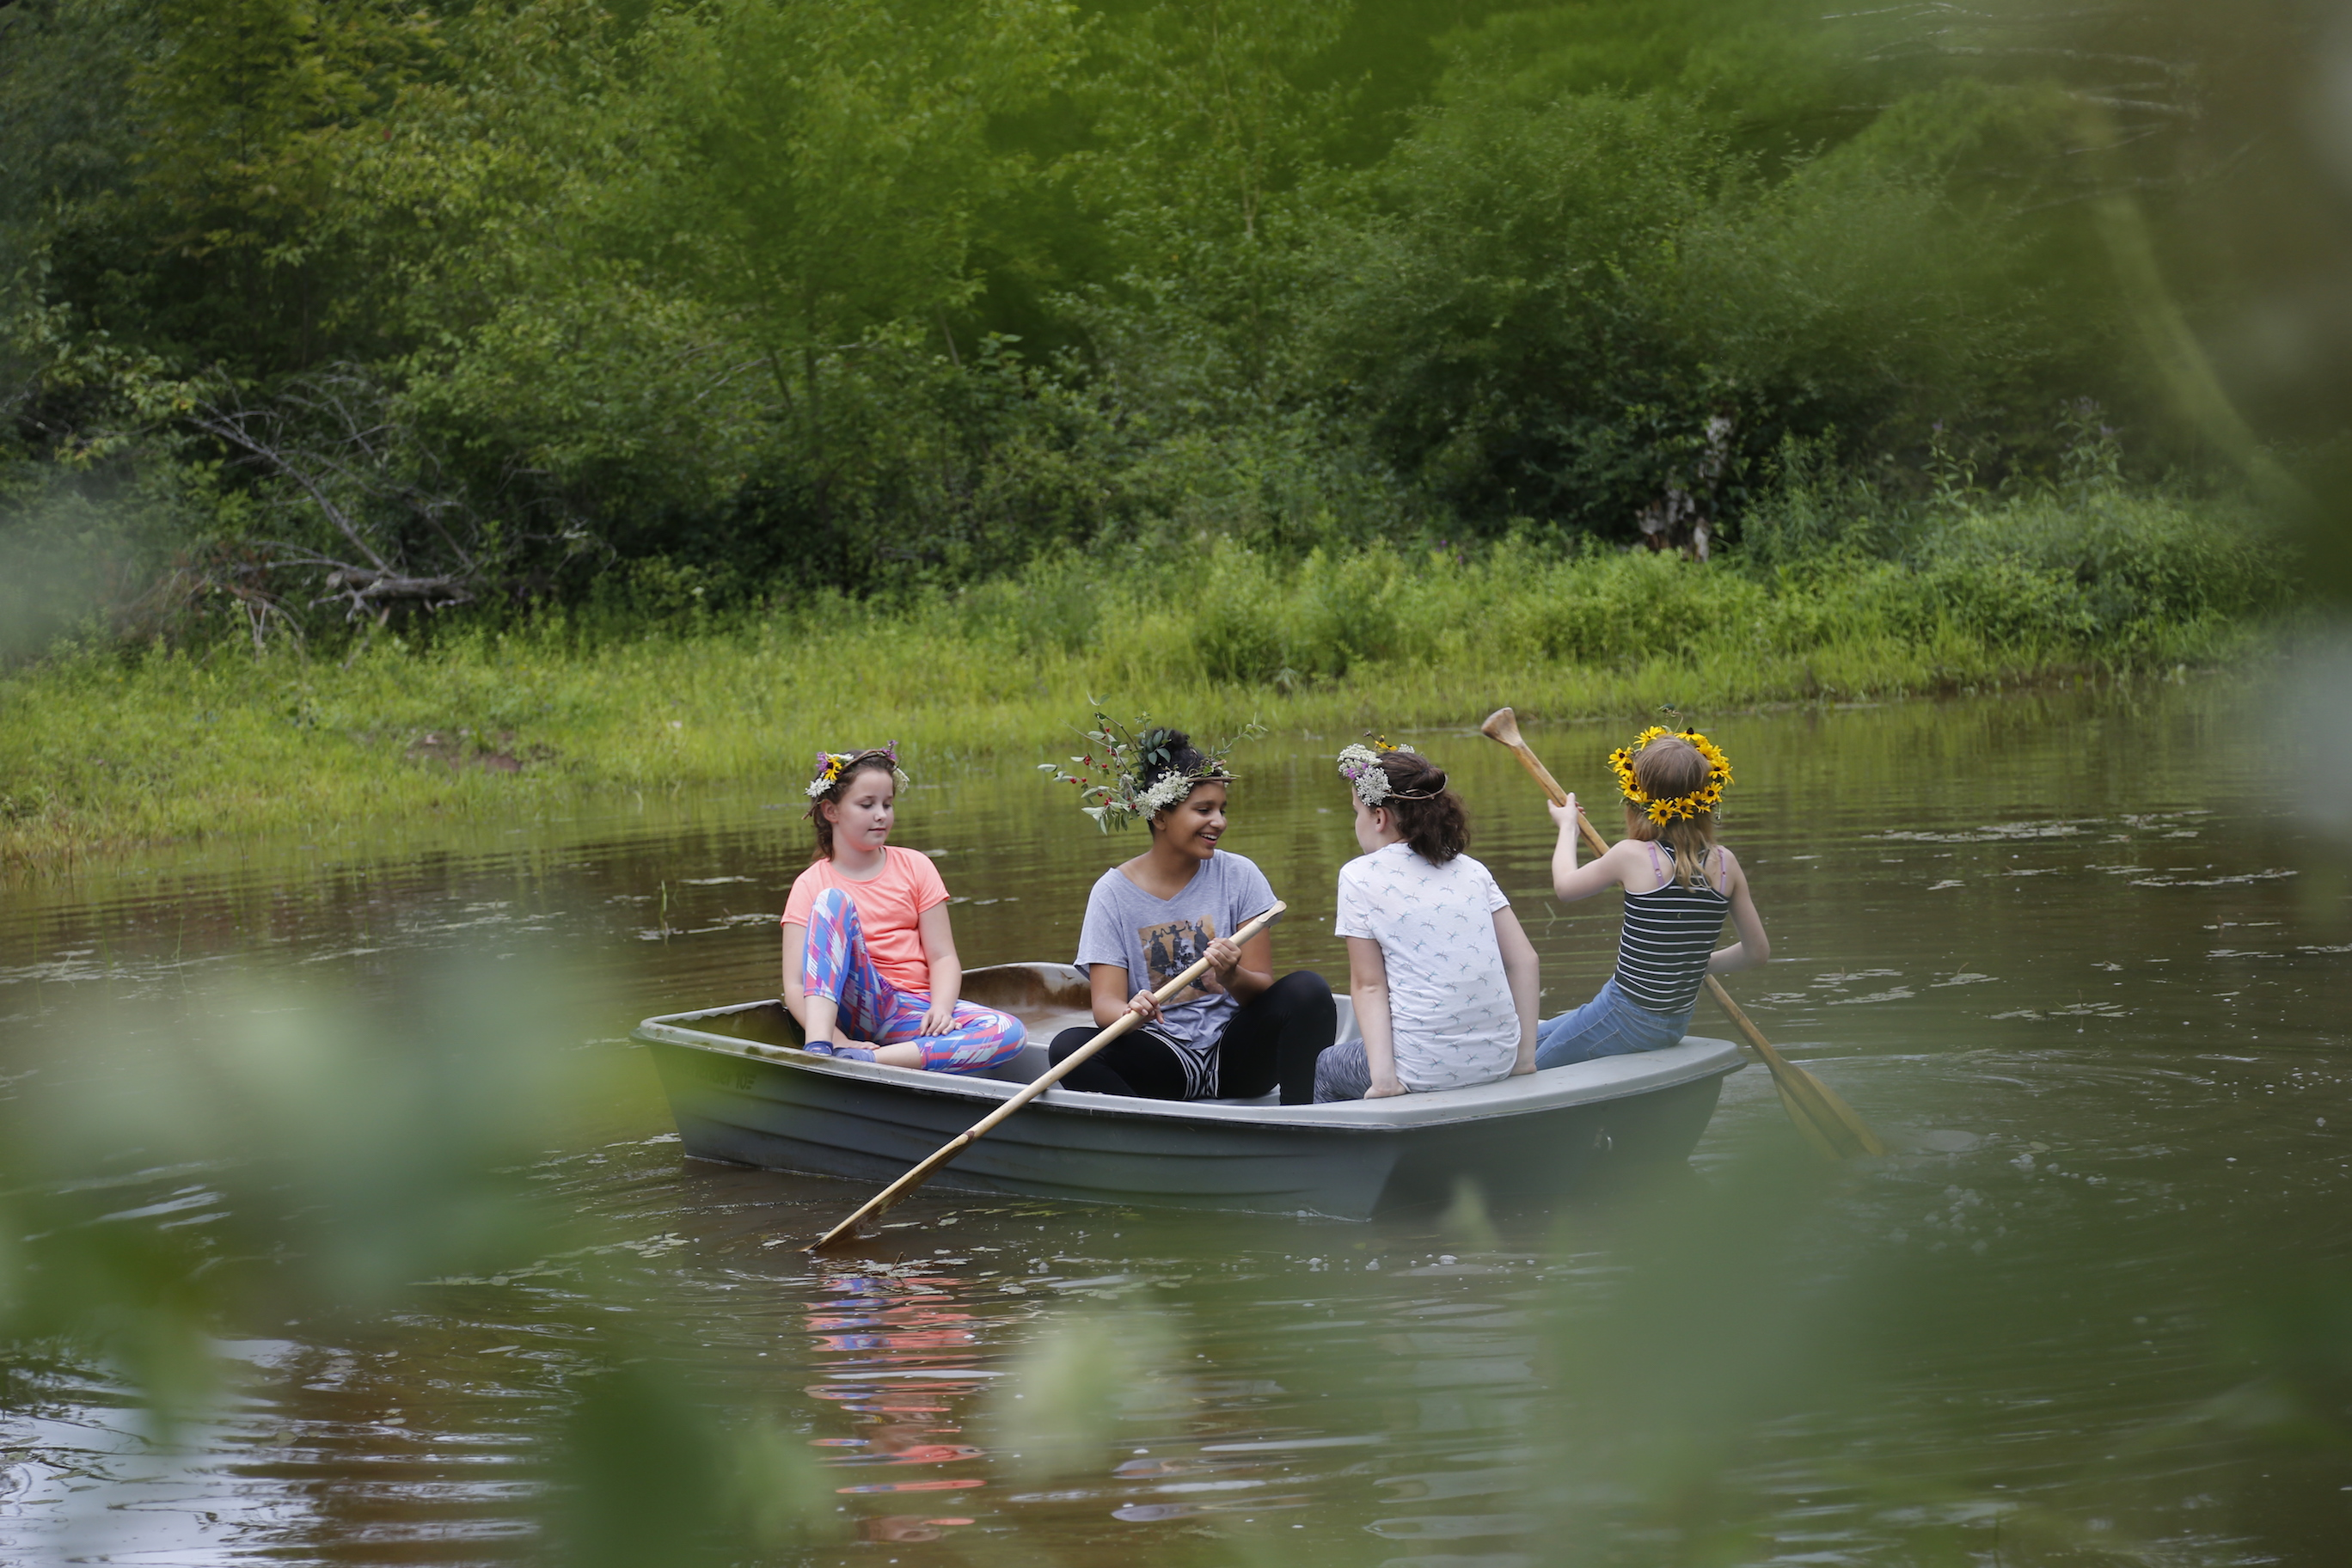 All Four Girls Off in the Woods, Paddling in the Boat